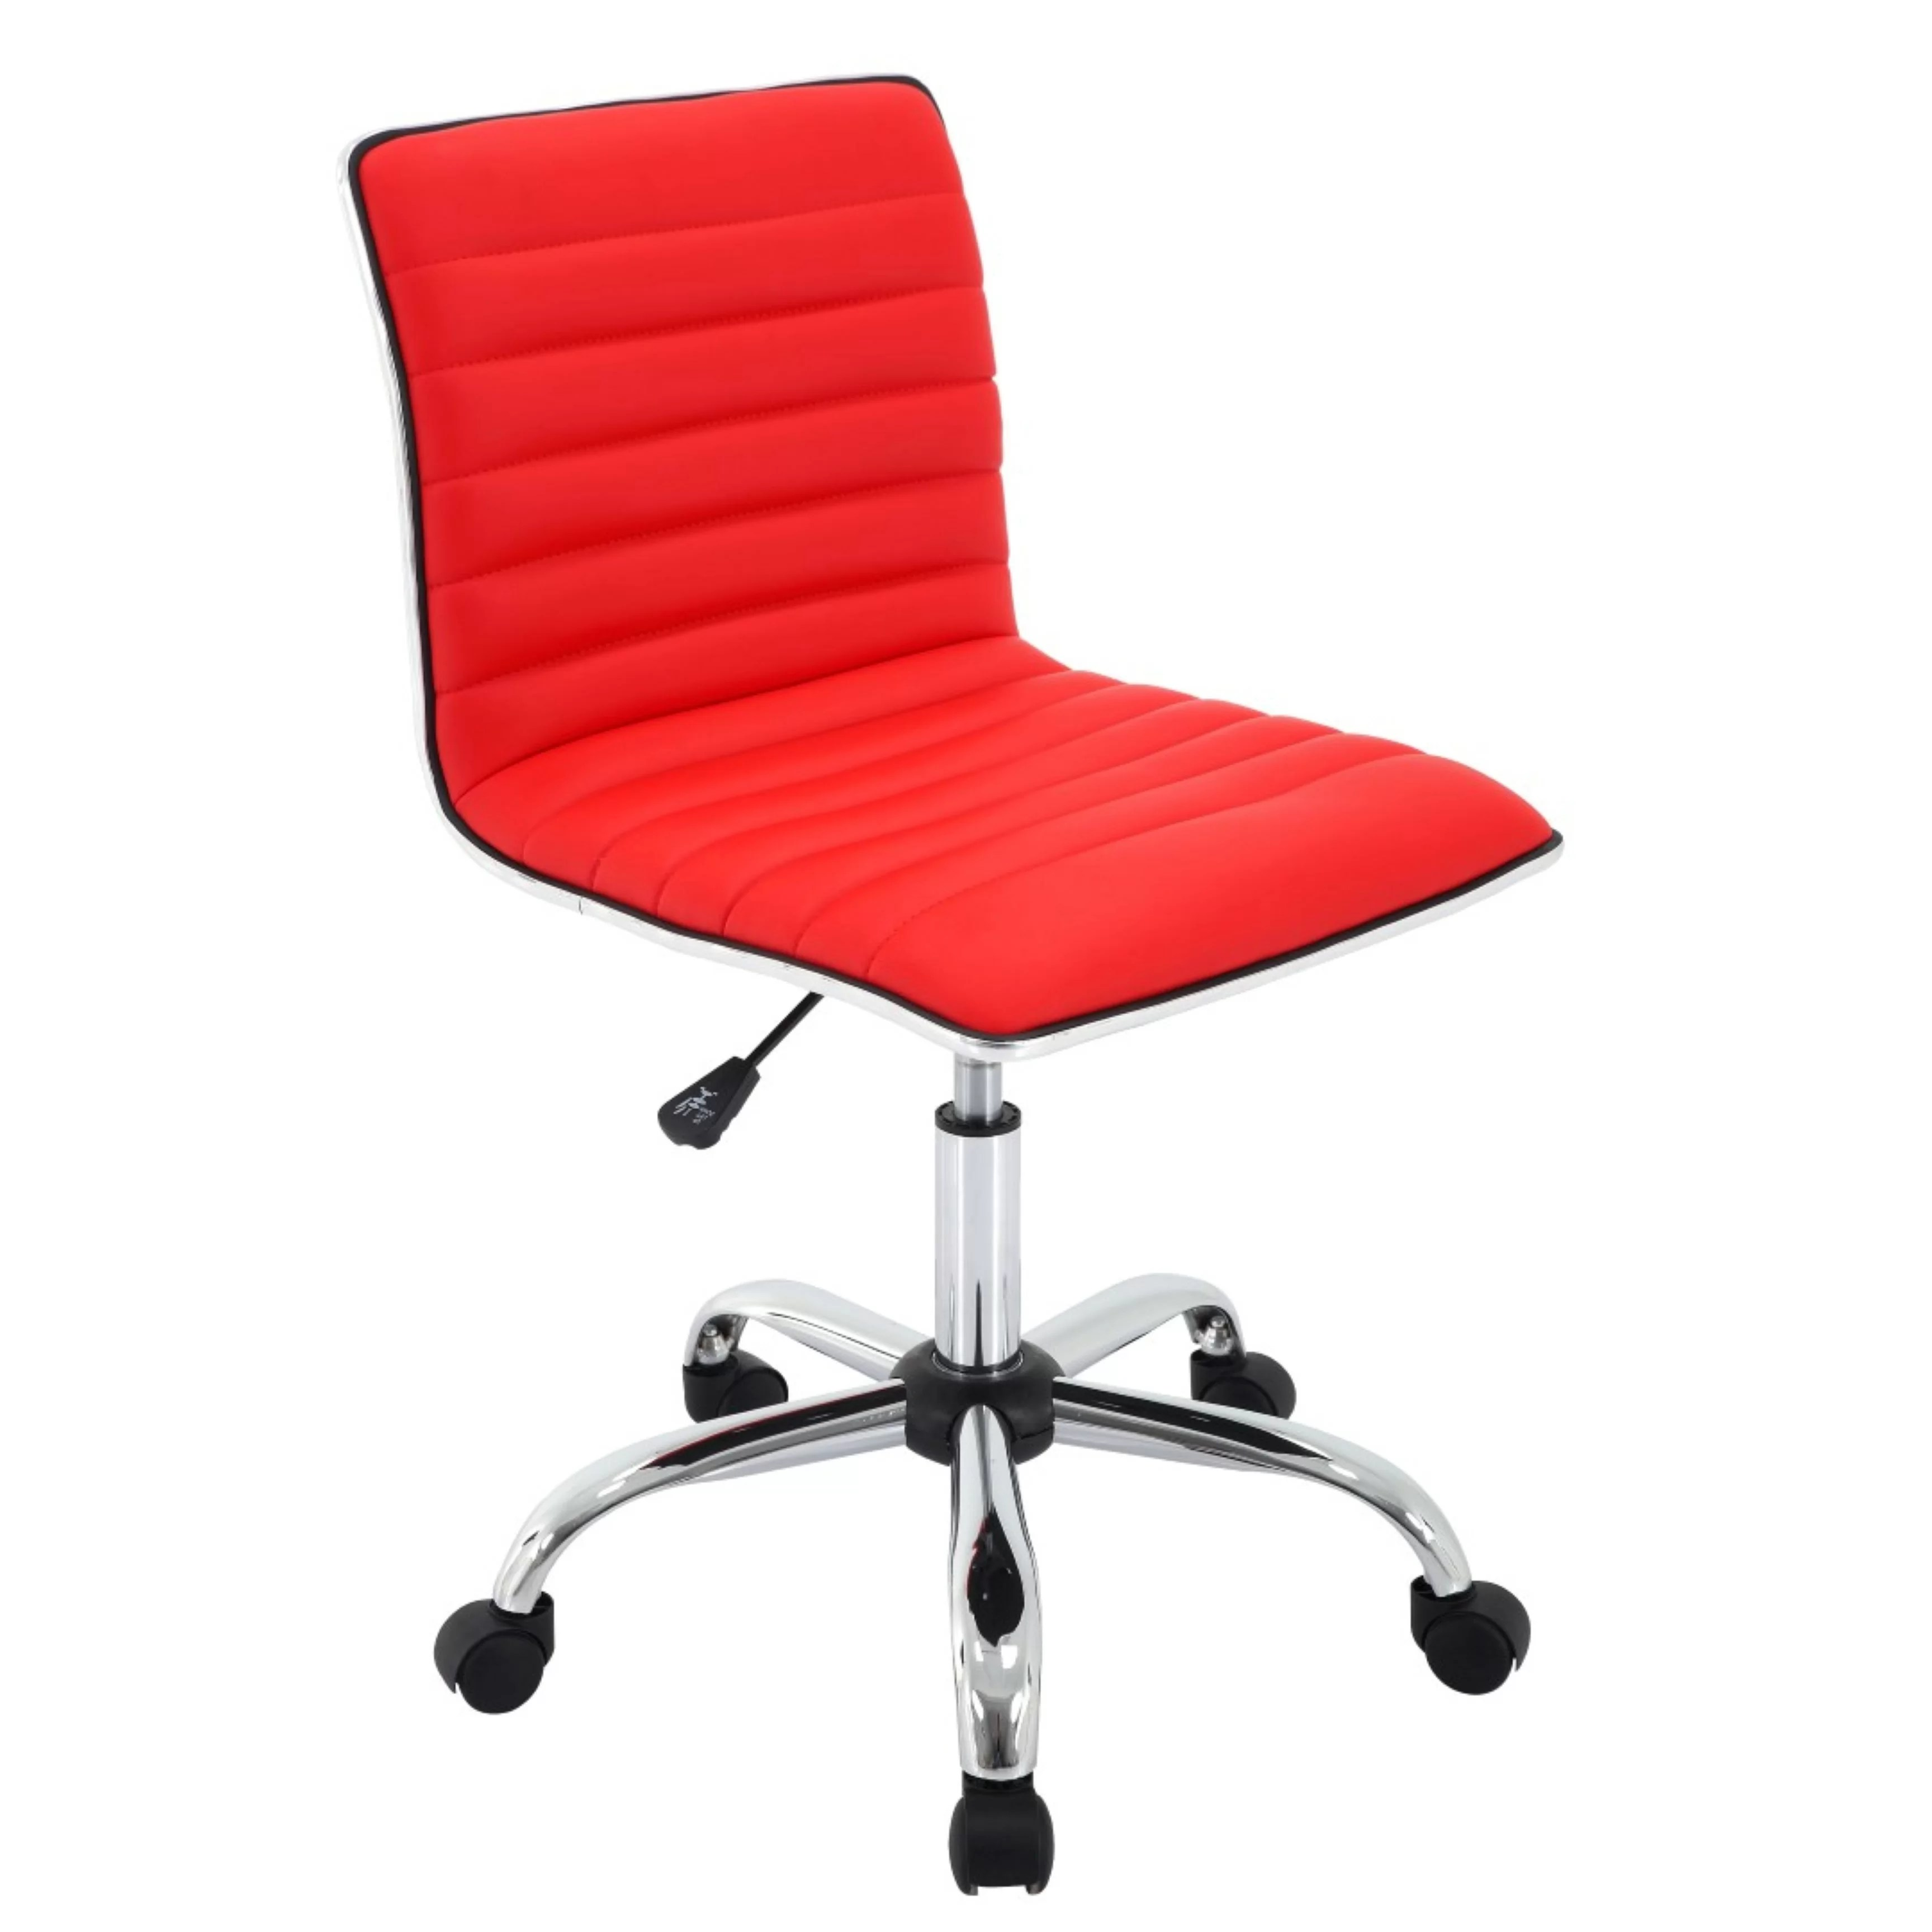 Most Ergonomic Office Chair Balanchine Office Chair